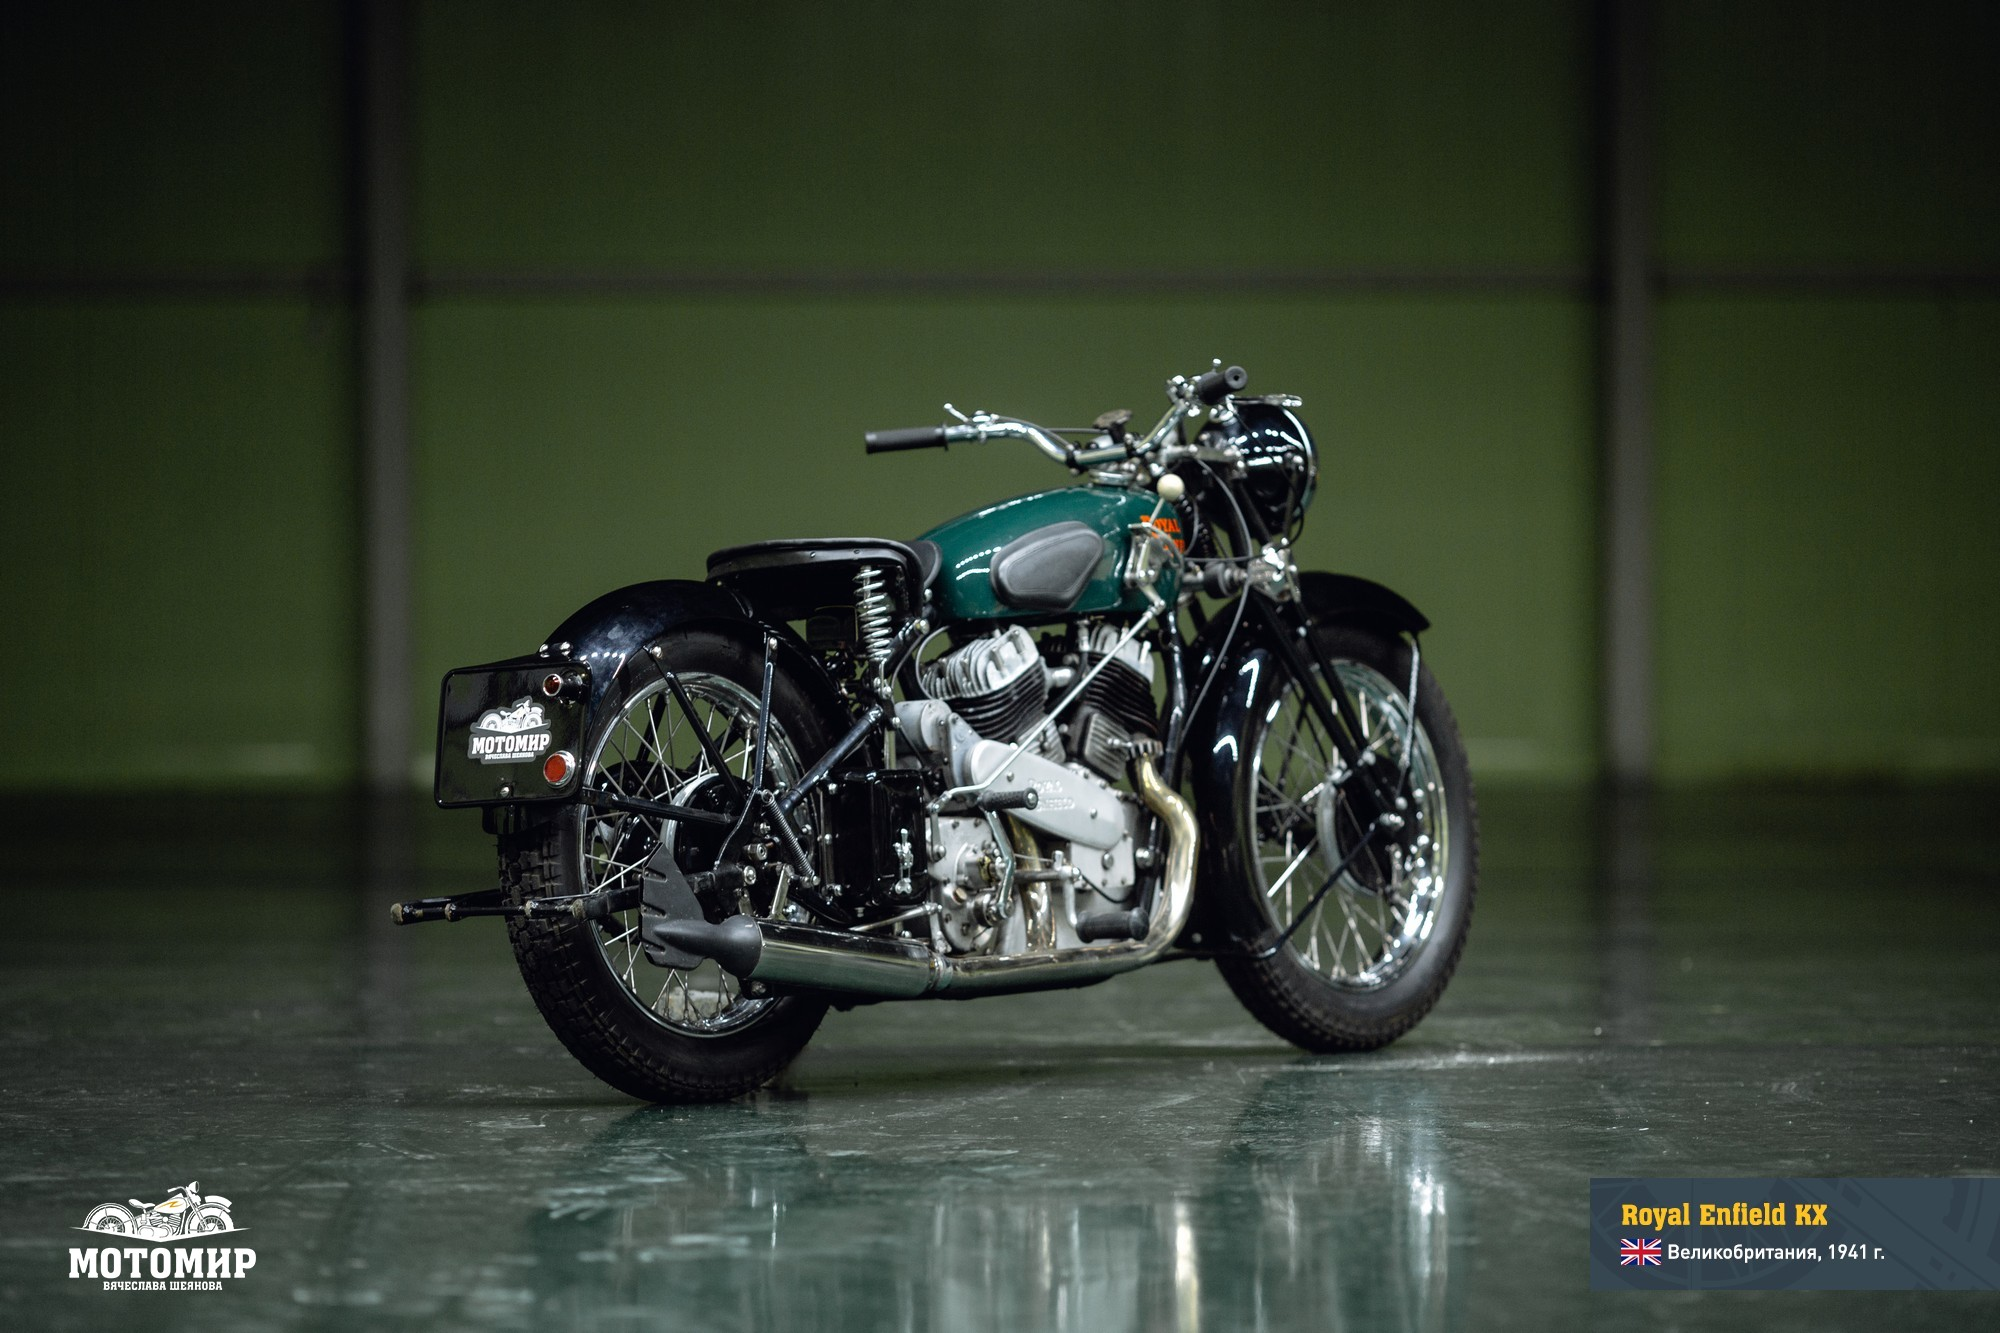 royal-enfield-kx-201601-web-04